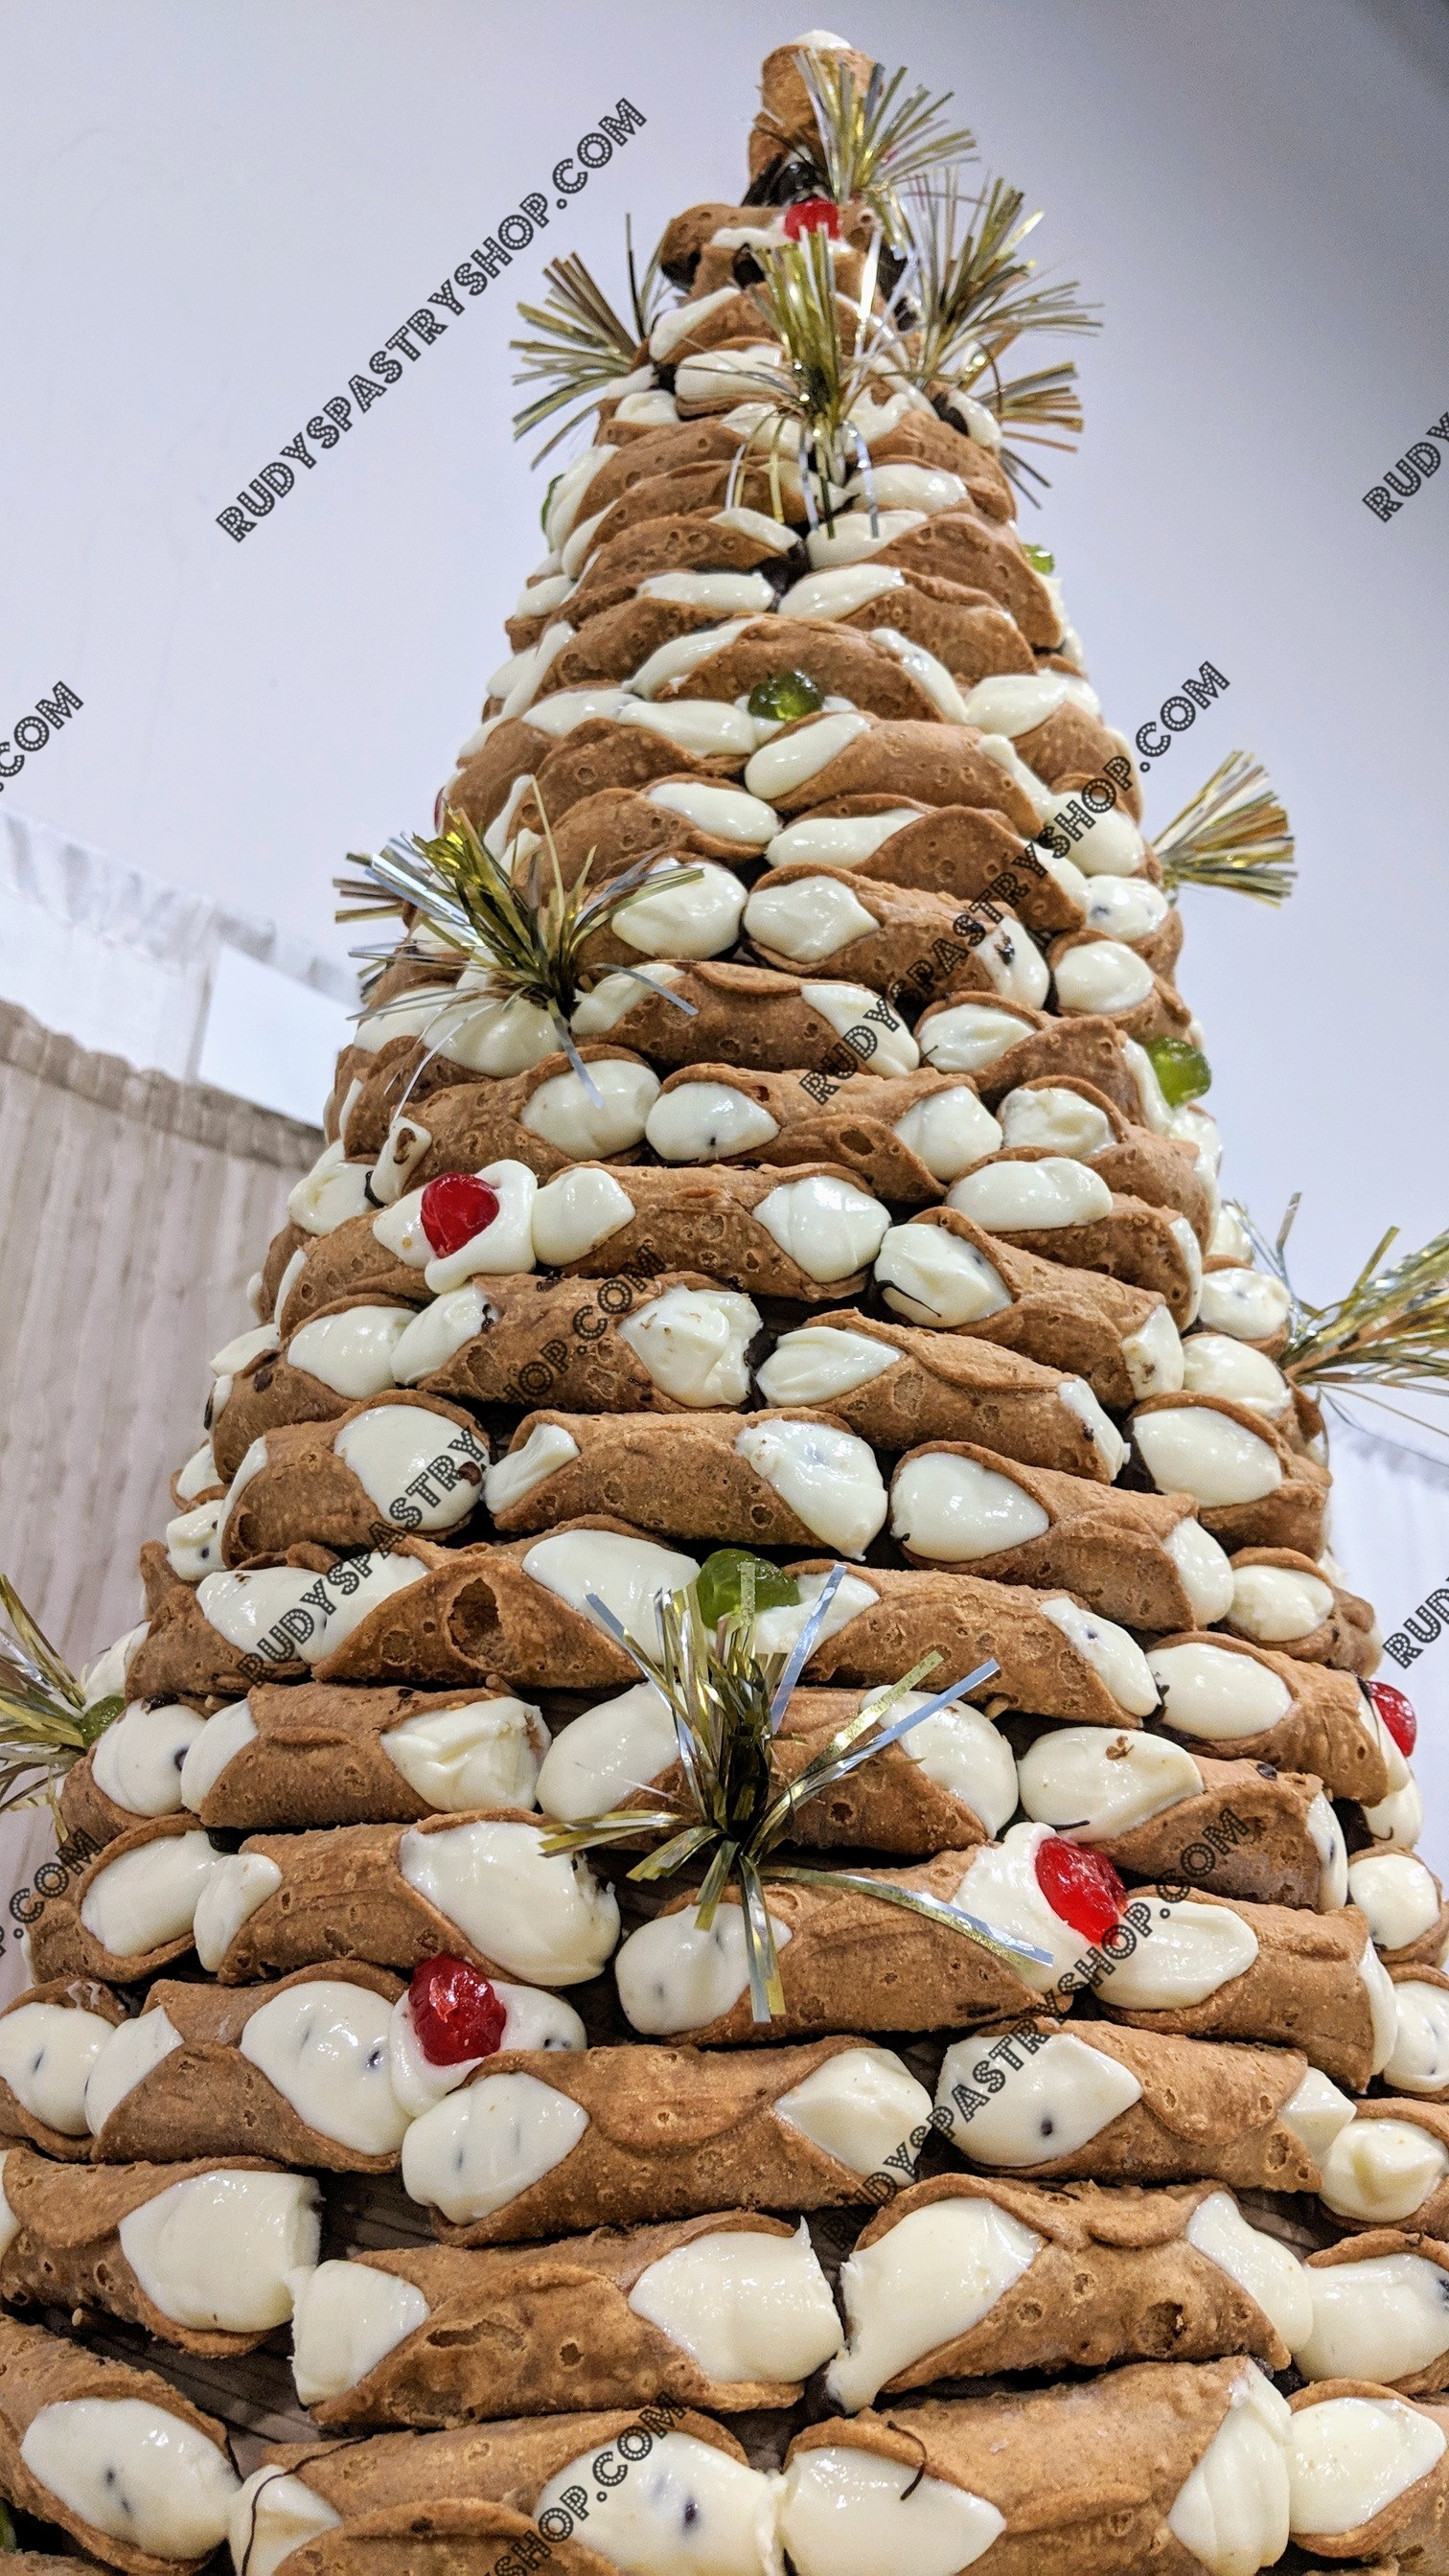 Holy Cannoli Tree - At Rudy's Pastry Shop we want to offer something special and over the top for our customers. Feast your eyes on our 4 Foot Holy Cannoli Tree cake. This delicious beauty will make a delicious center piece to any event you are hosting. Our Cannoli Tree cake is 95% edible.This cake is a fantastic, eye-popping, and fun focal point for your Wedding, Birthday party, Shower, Fundraiser, Company Event, or any Celebration.If this is a bit larger than you may need, we do offer alternate sizes in a 3, 2, or 1 Foot Cannoli Tree cake.Call to order your Cannoli Tree today! 973.743.3768